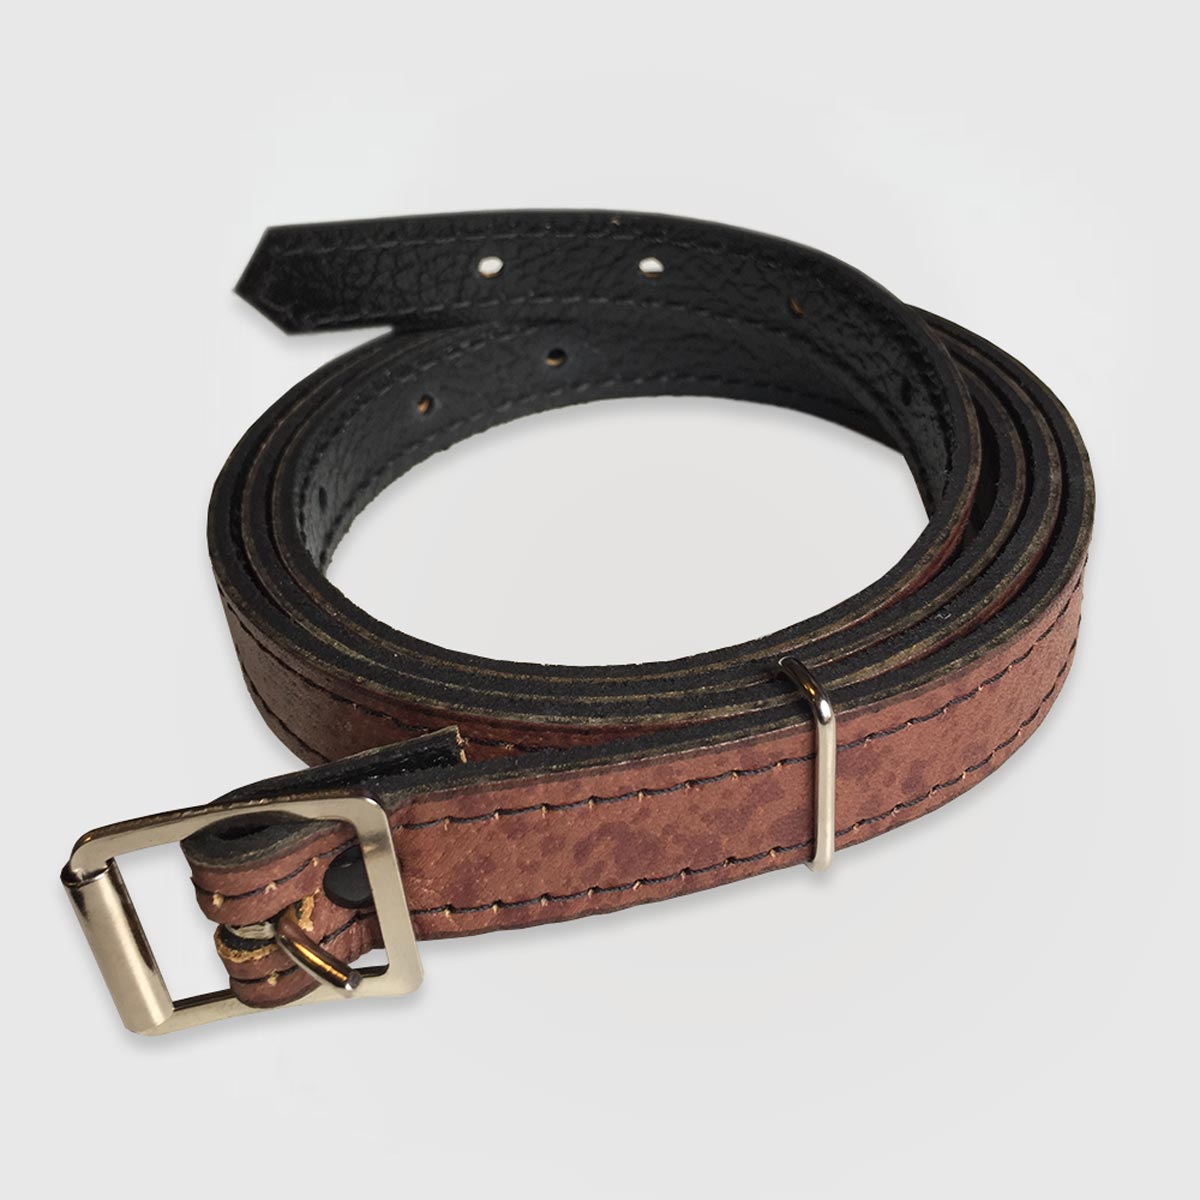 Sporran Chains and Straps